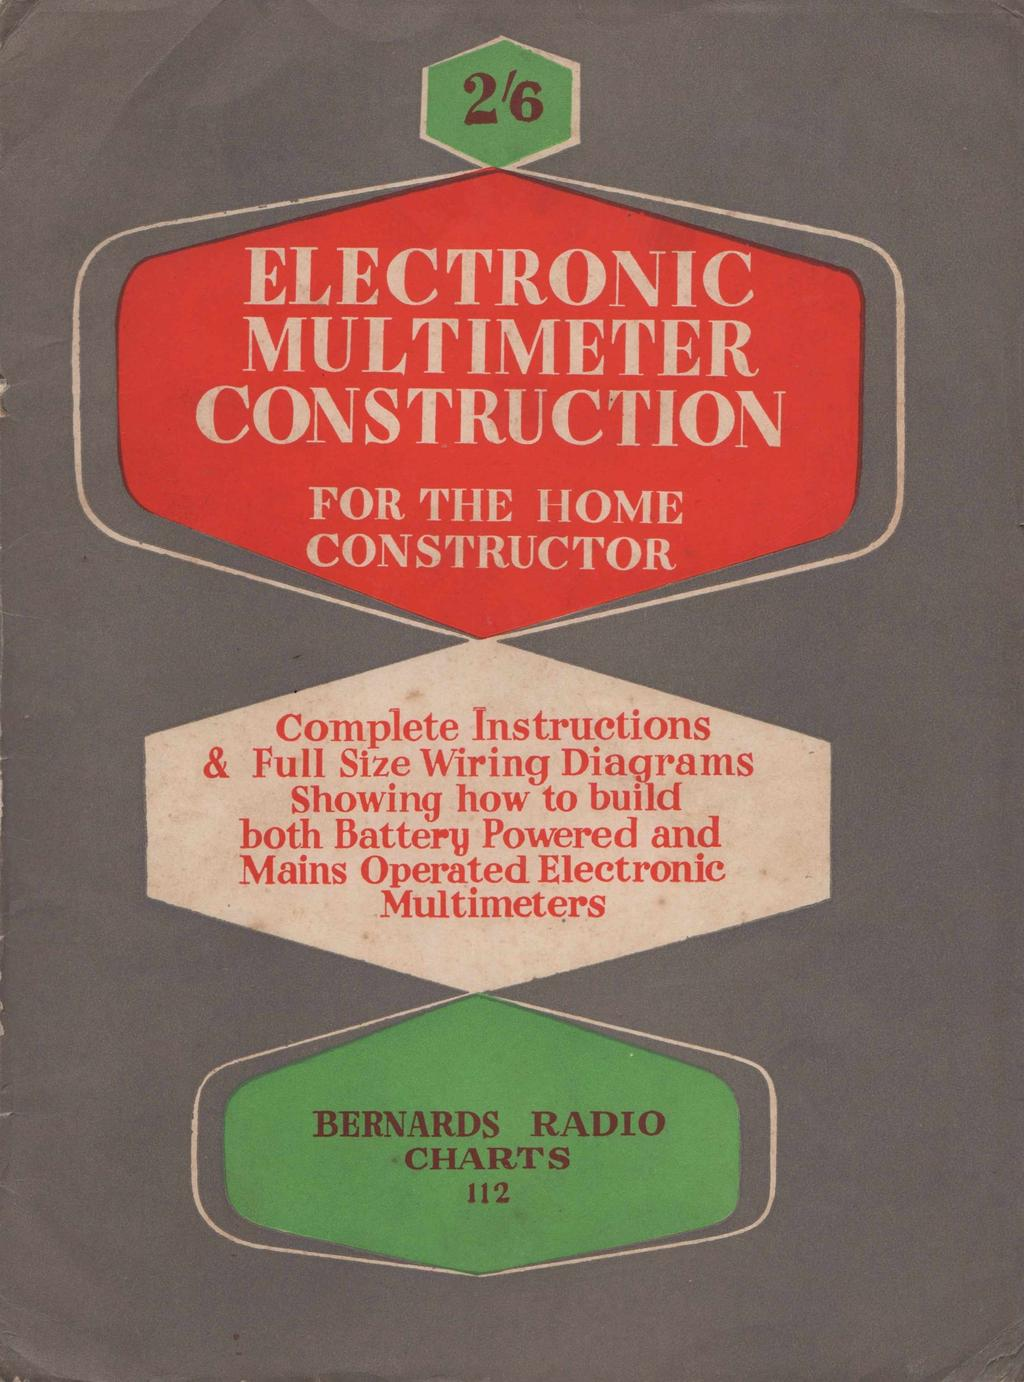 ELECTRONIC MULTIMETER CONSTRUCTION ^ FOR THE HOME CONSTRUCTOR Complete Instructions & Full Size